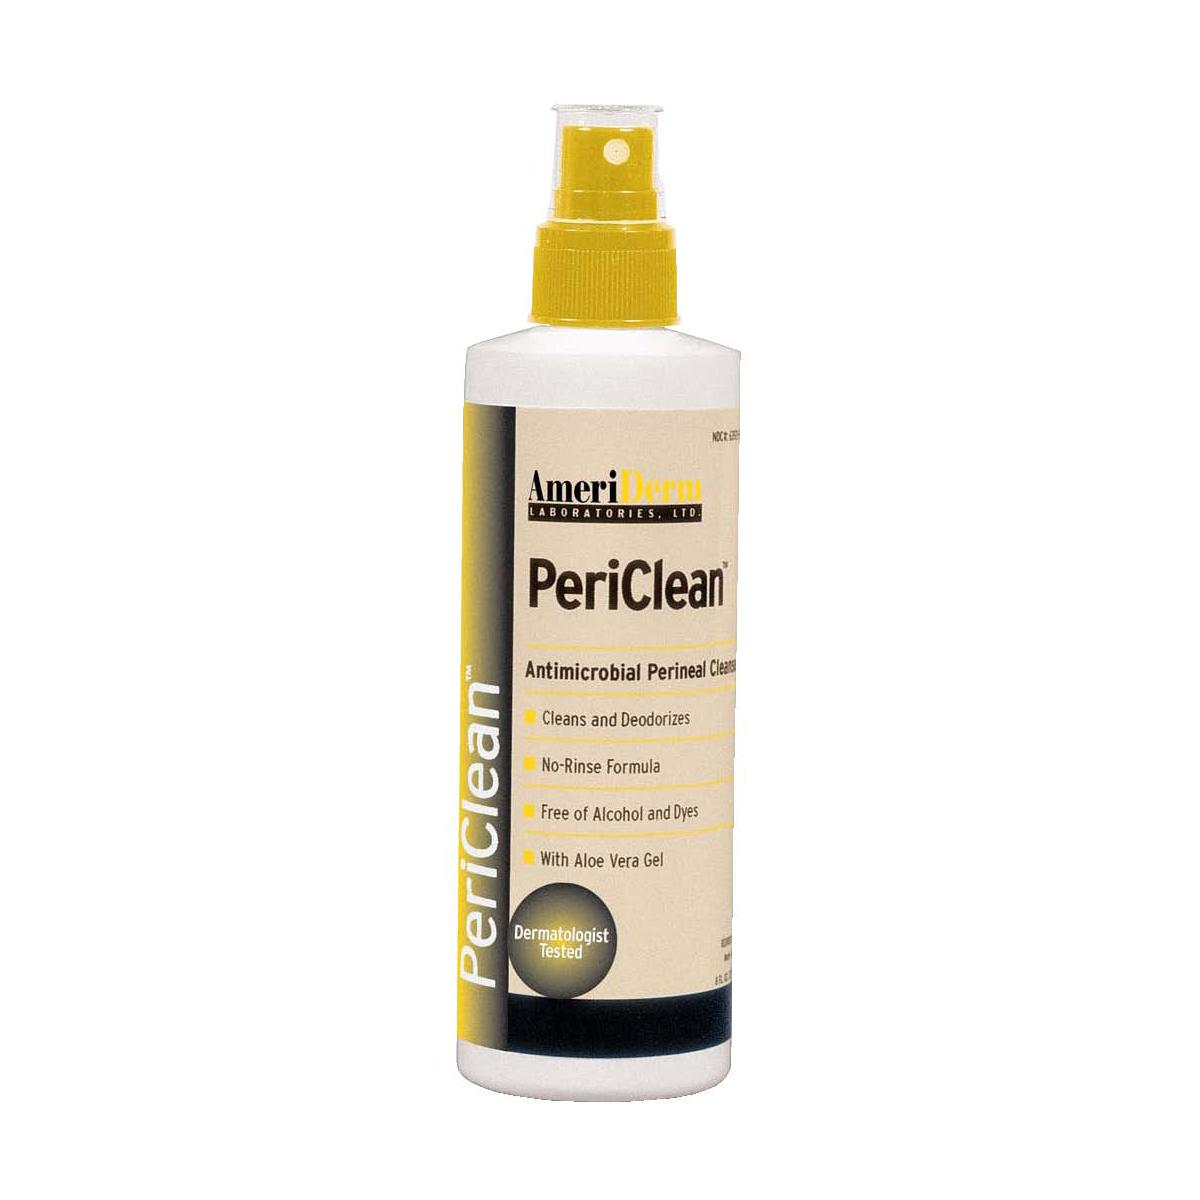 Periclean Antimicrobial Perineal 8oz